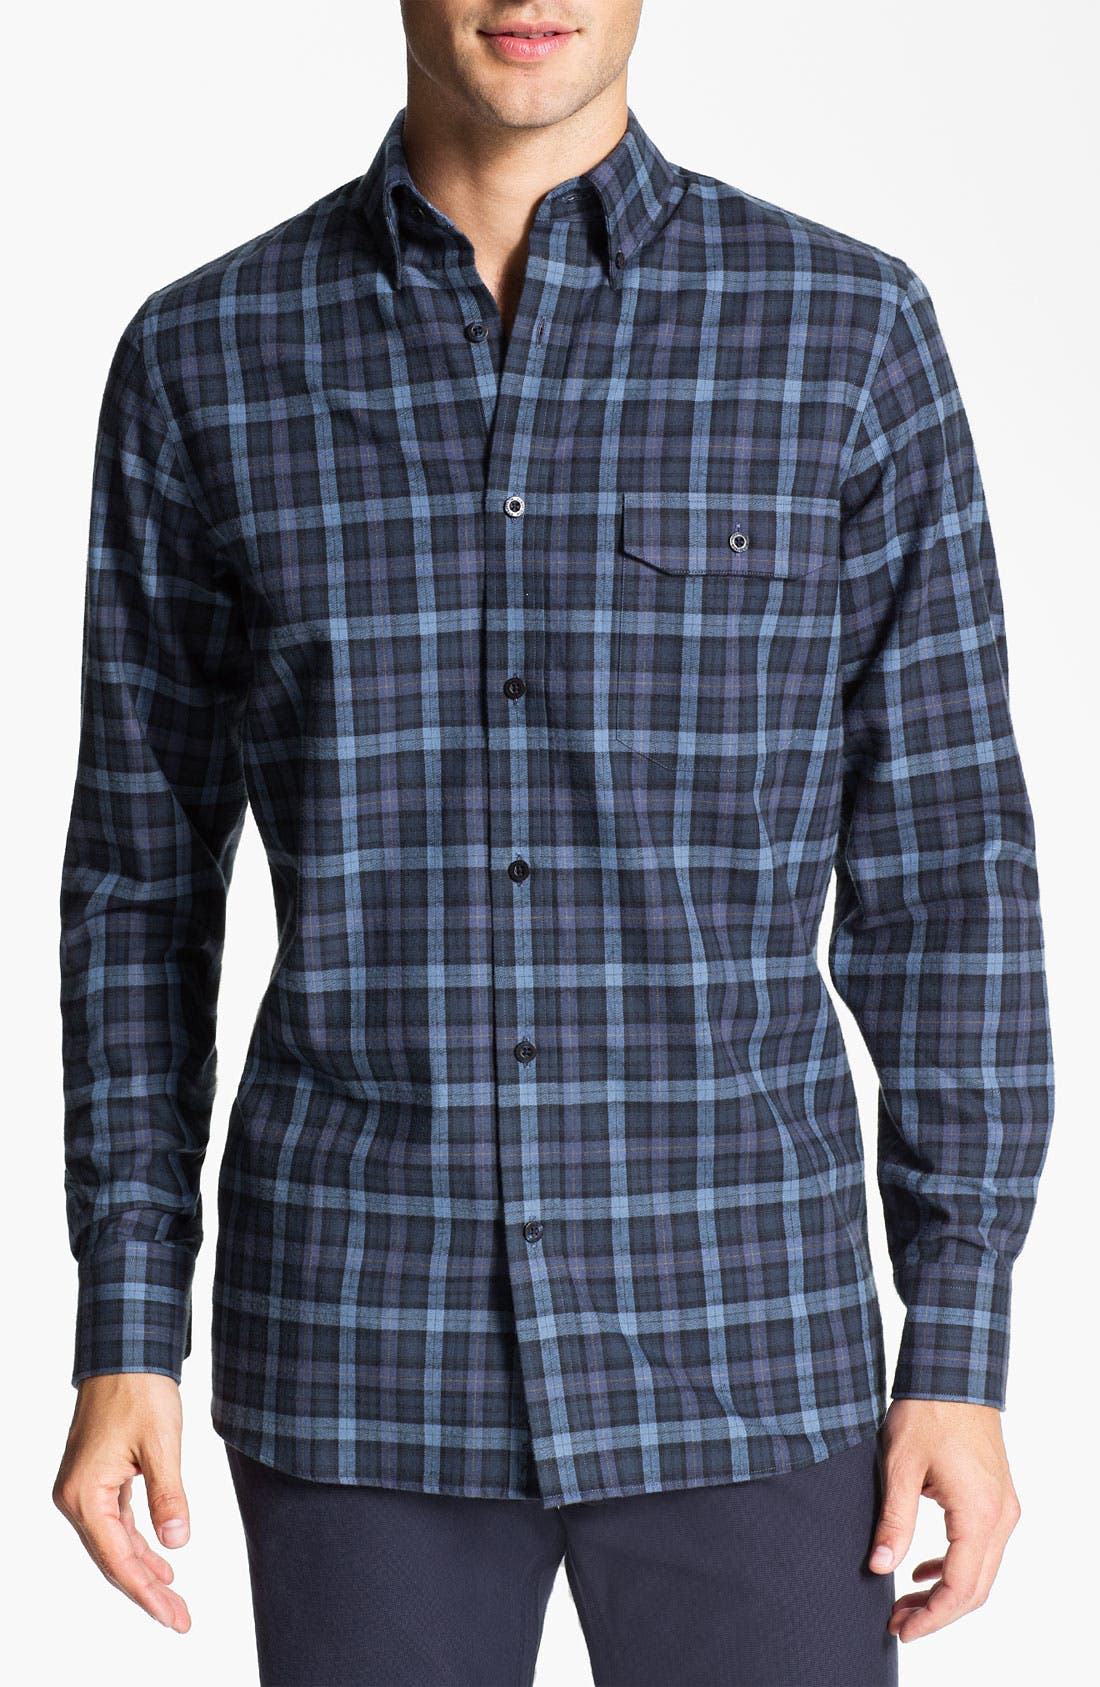 Main Image - Nordstrom Regular Fit Cotton Flannel Shirt